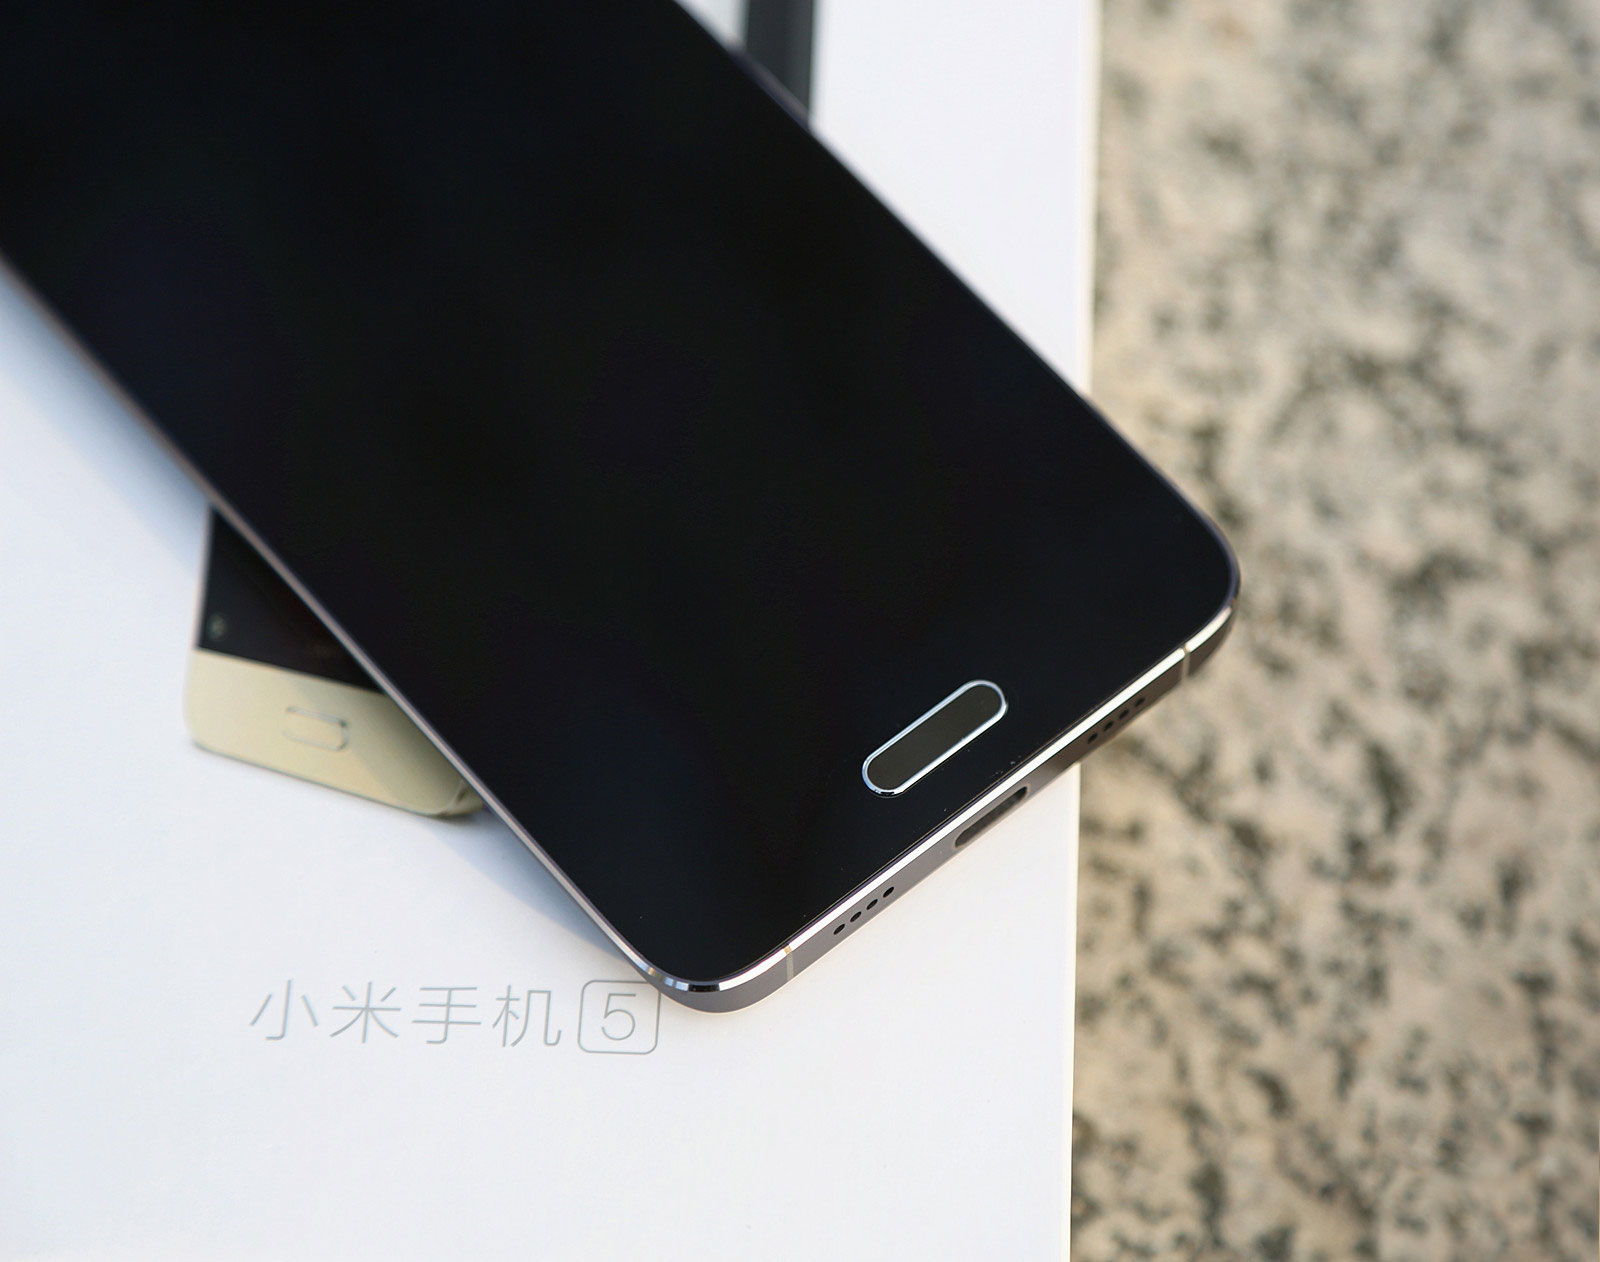 Xiaomi Mi 5 smartphone placed on top of its packaging